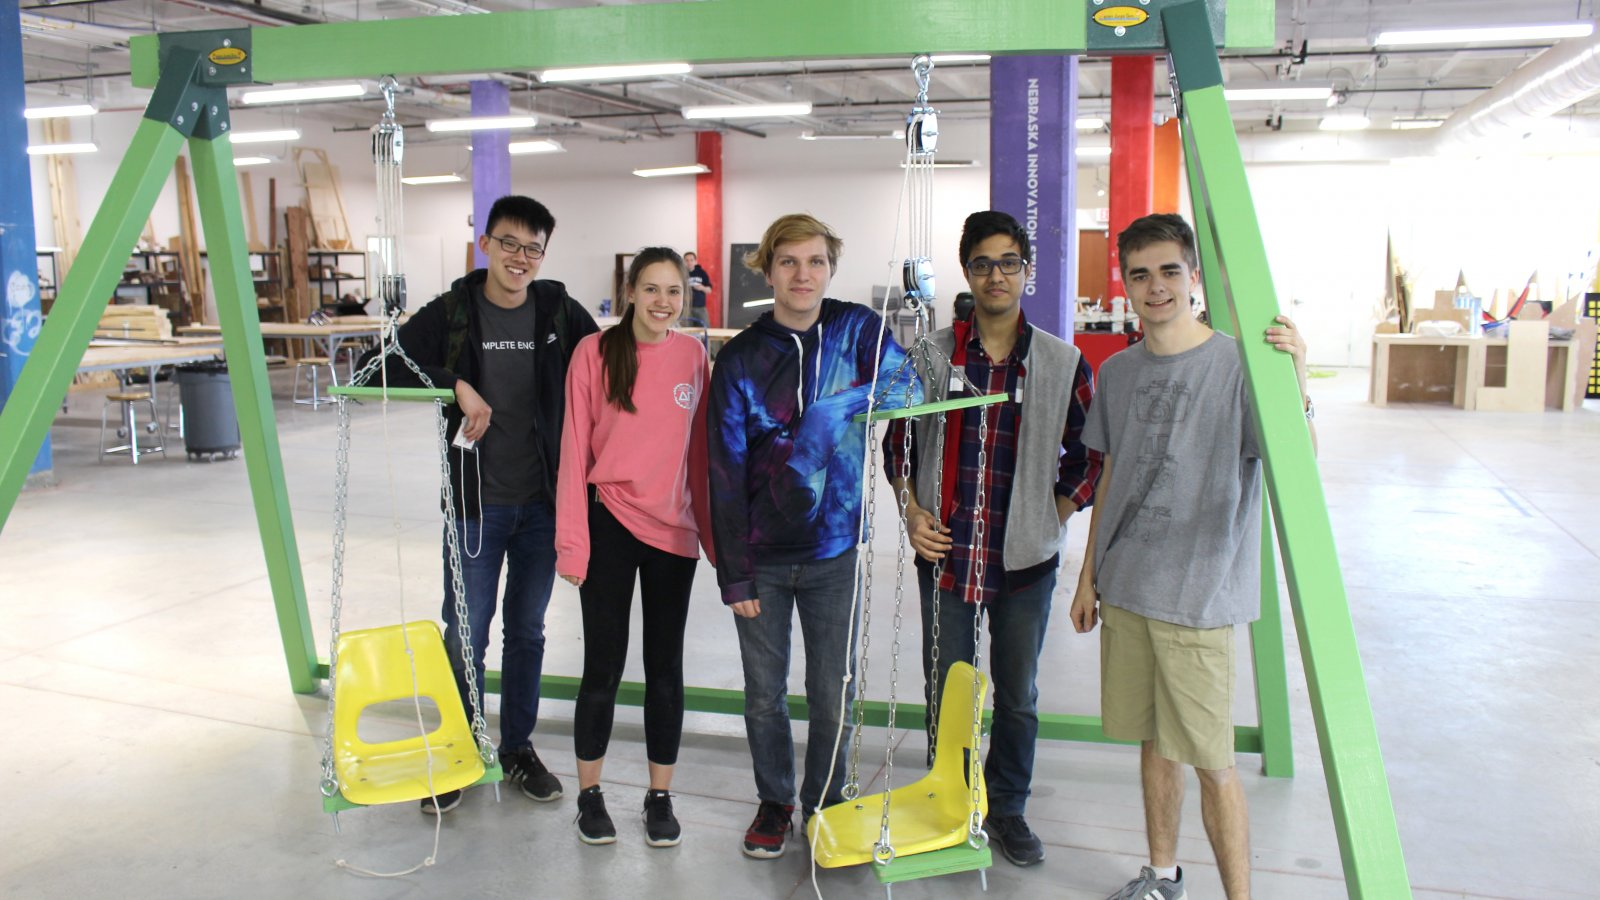 Nebraska Engineering students were part of the Nebraska Theme Park Design Group, which designed and built a new attraction - the Superhero Swing - for the Lincoln Children's Museum.